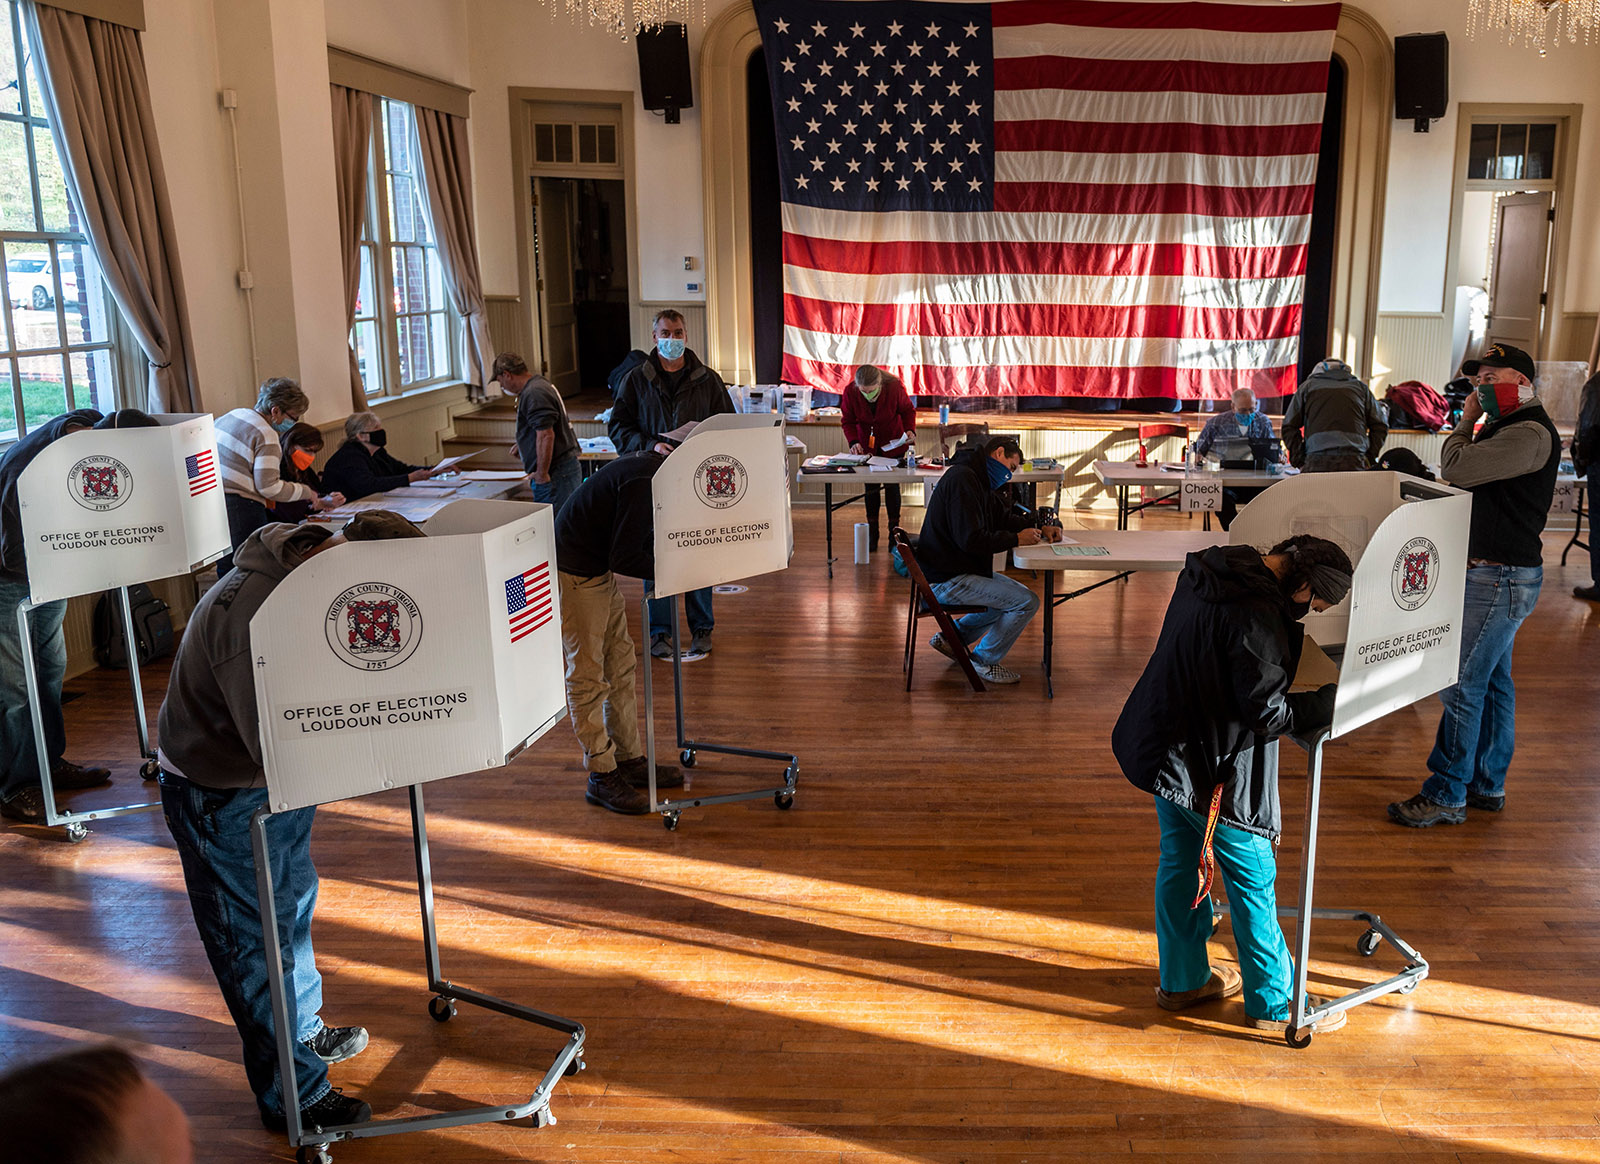 Voters cast their ballots at the old Stone School, used as a polling station, on election day in Hillsboro, Virginia on Tuesday.